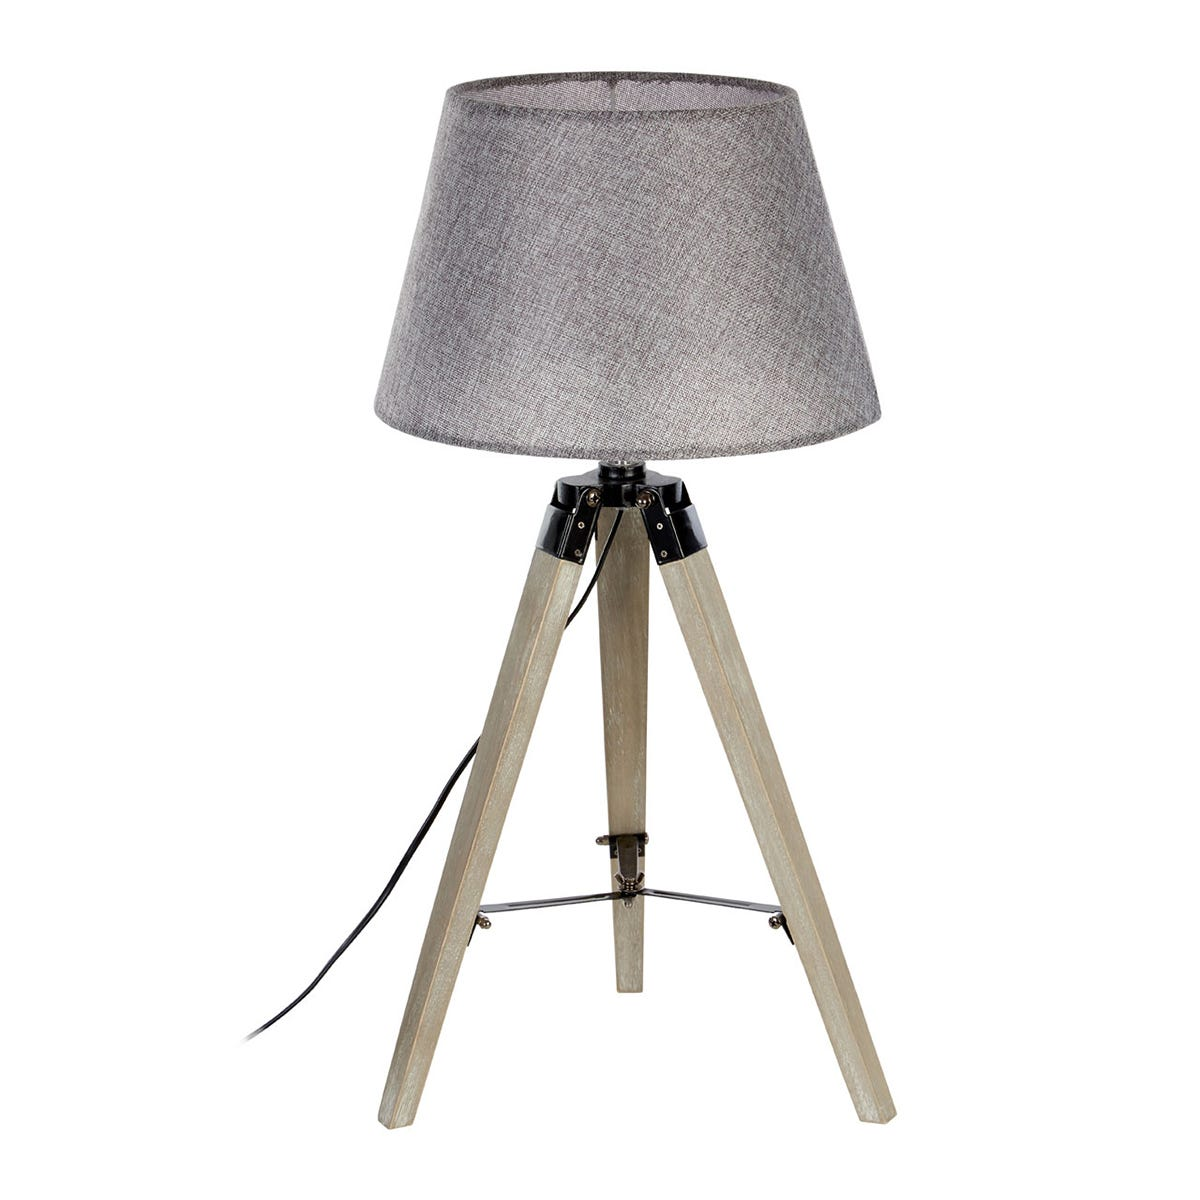 Premier Housewares Harper Table Lamp in Grey Wood Tripod with Grey Shade